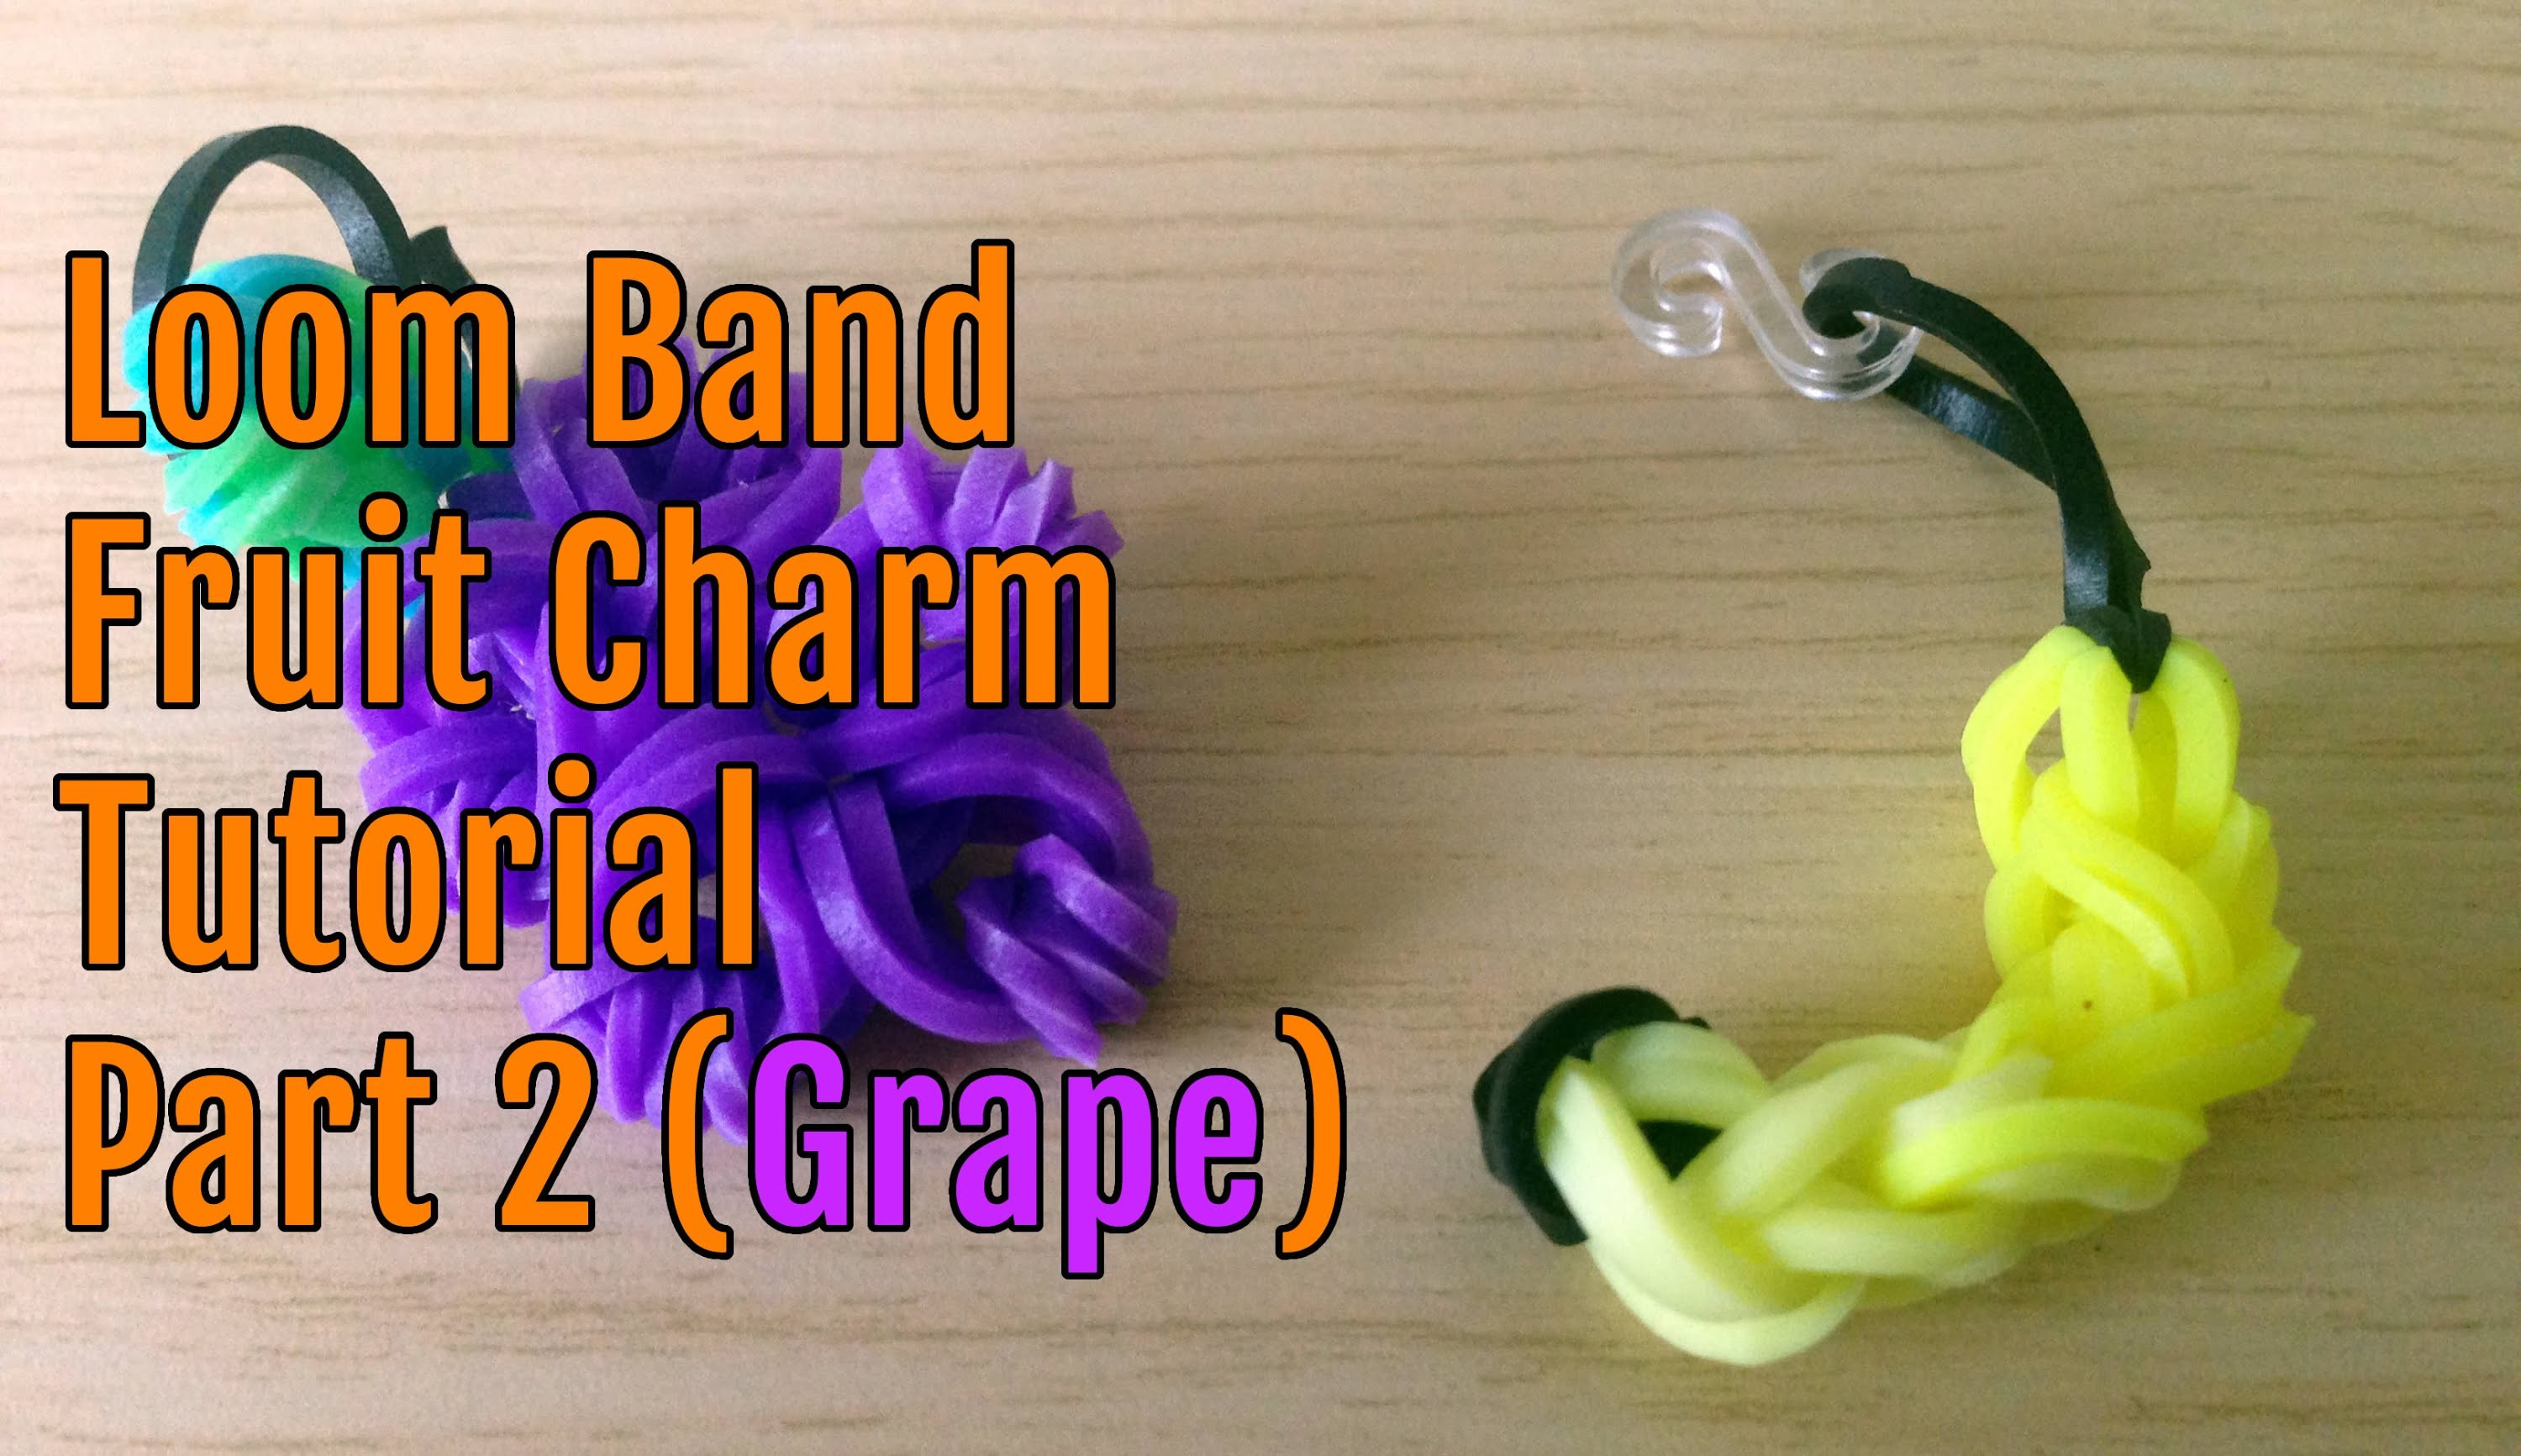 Making some loom band fruit charms tutorial (Part 2)